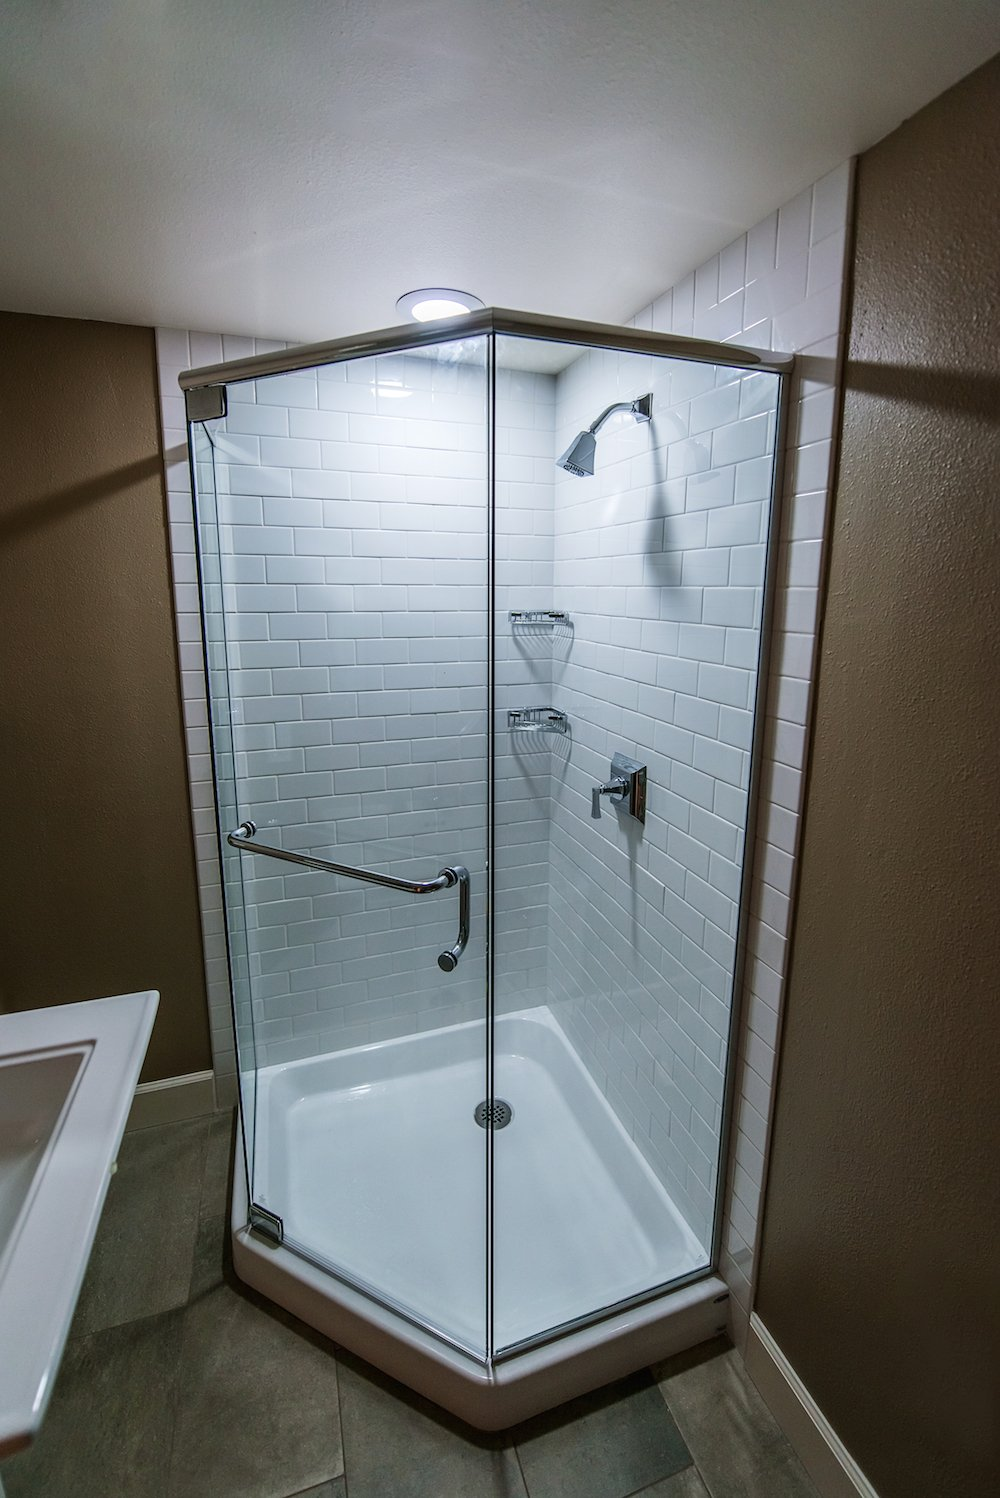 Tub Shower Enclosures Shower Tub Enclosure Rotating Shower Conwy Valley Plumbing 28 New